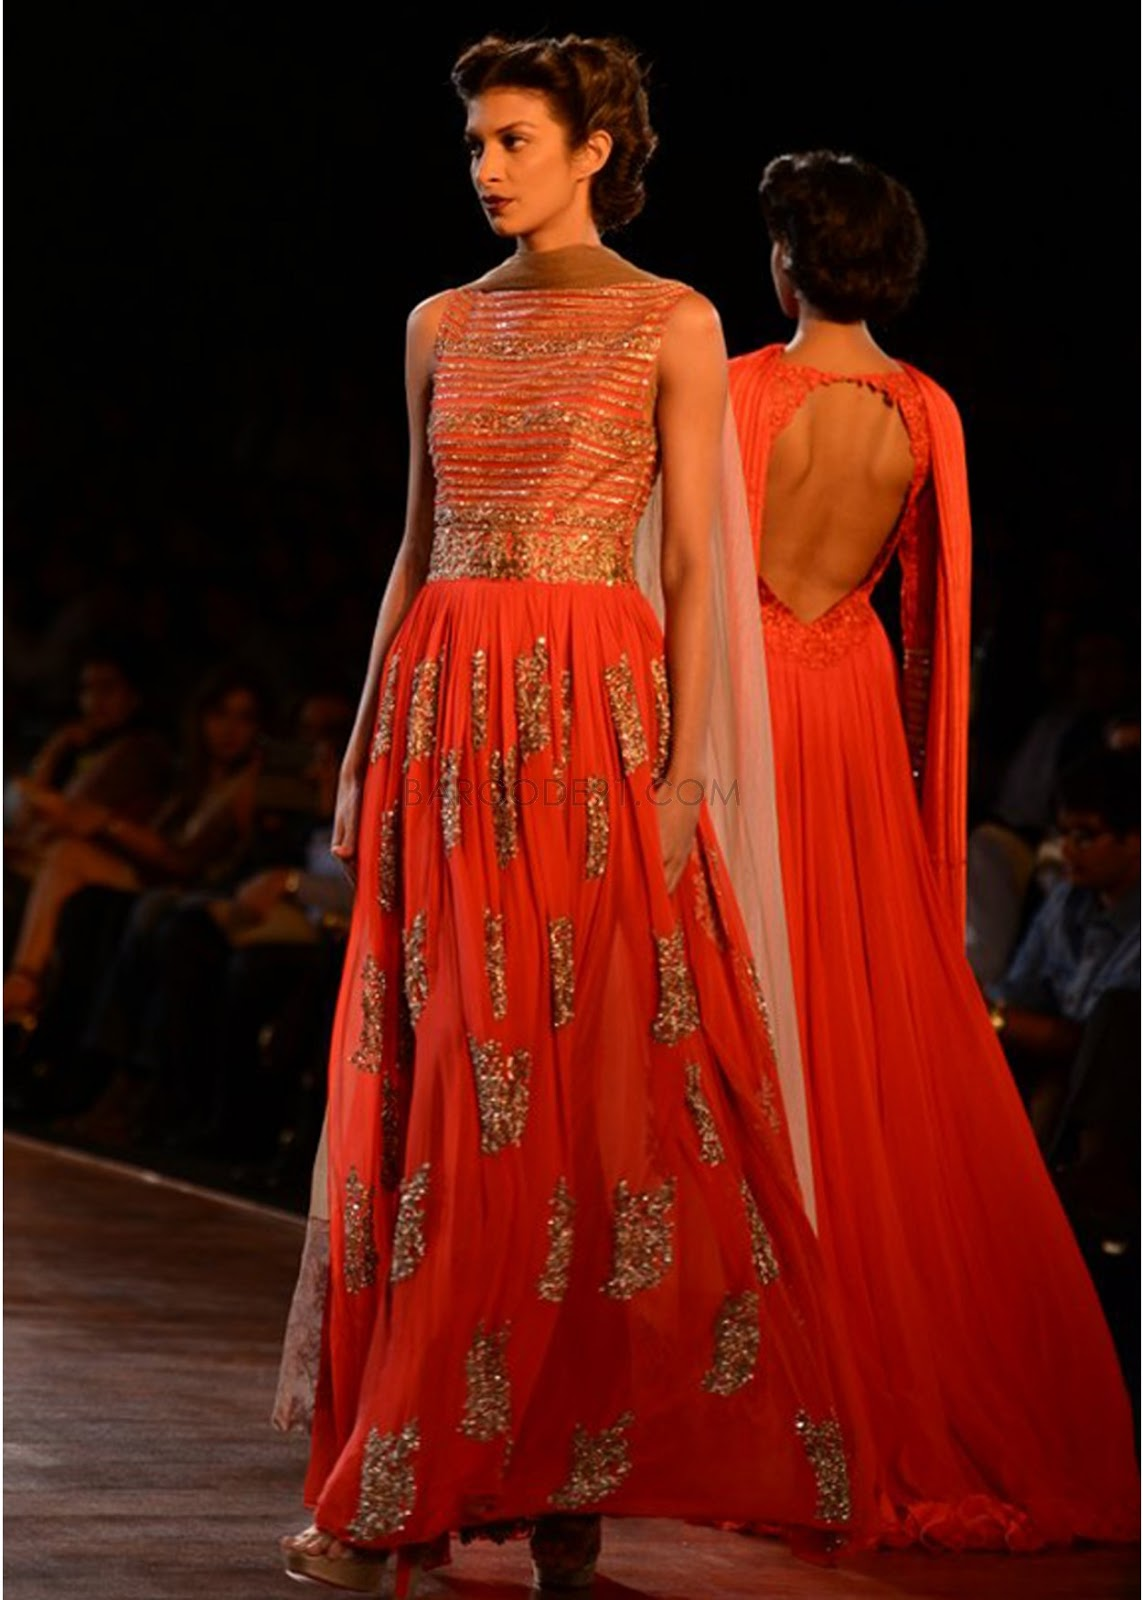 Manish Malhotra's collection at Delhi Couture Week 2013 ...